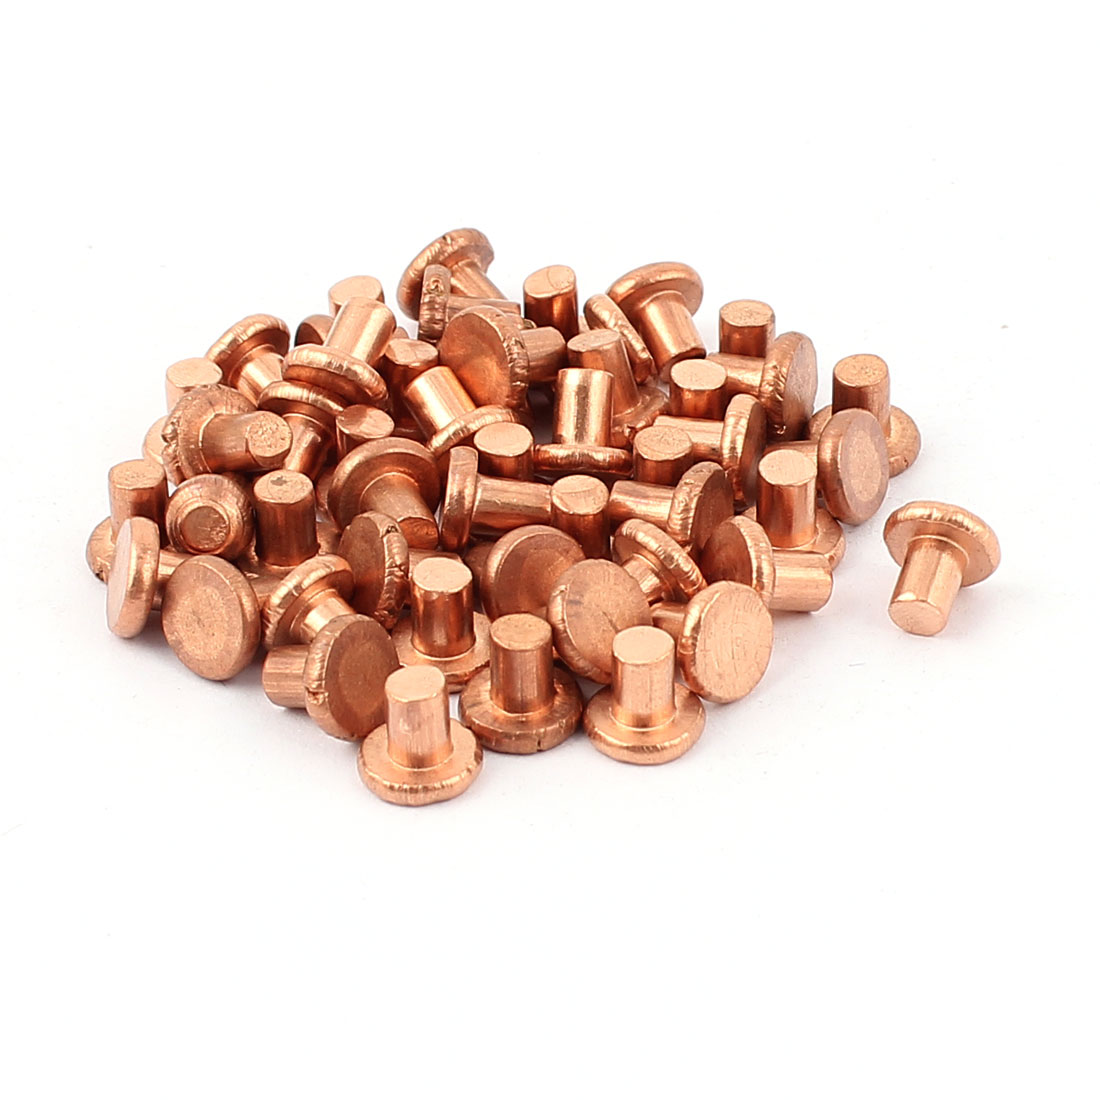 "50 Pcs 5/32"" Diameter 3/16"" Long Shank Flat Head Copper Solid Rivets Fasteners"